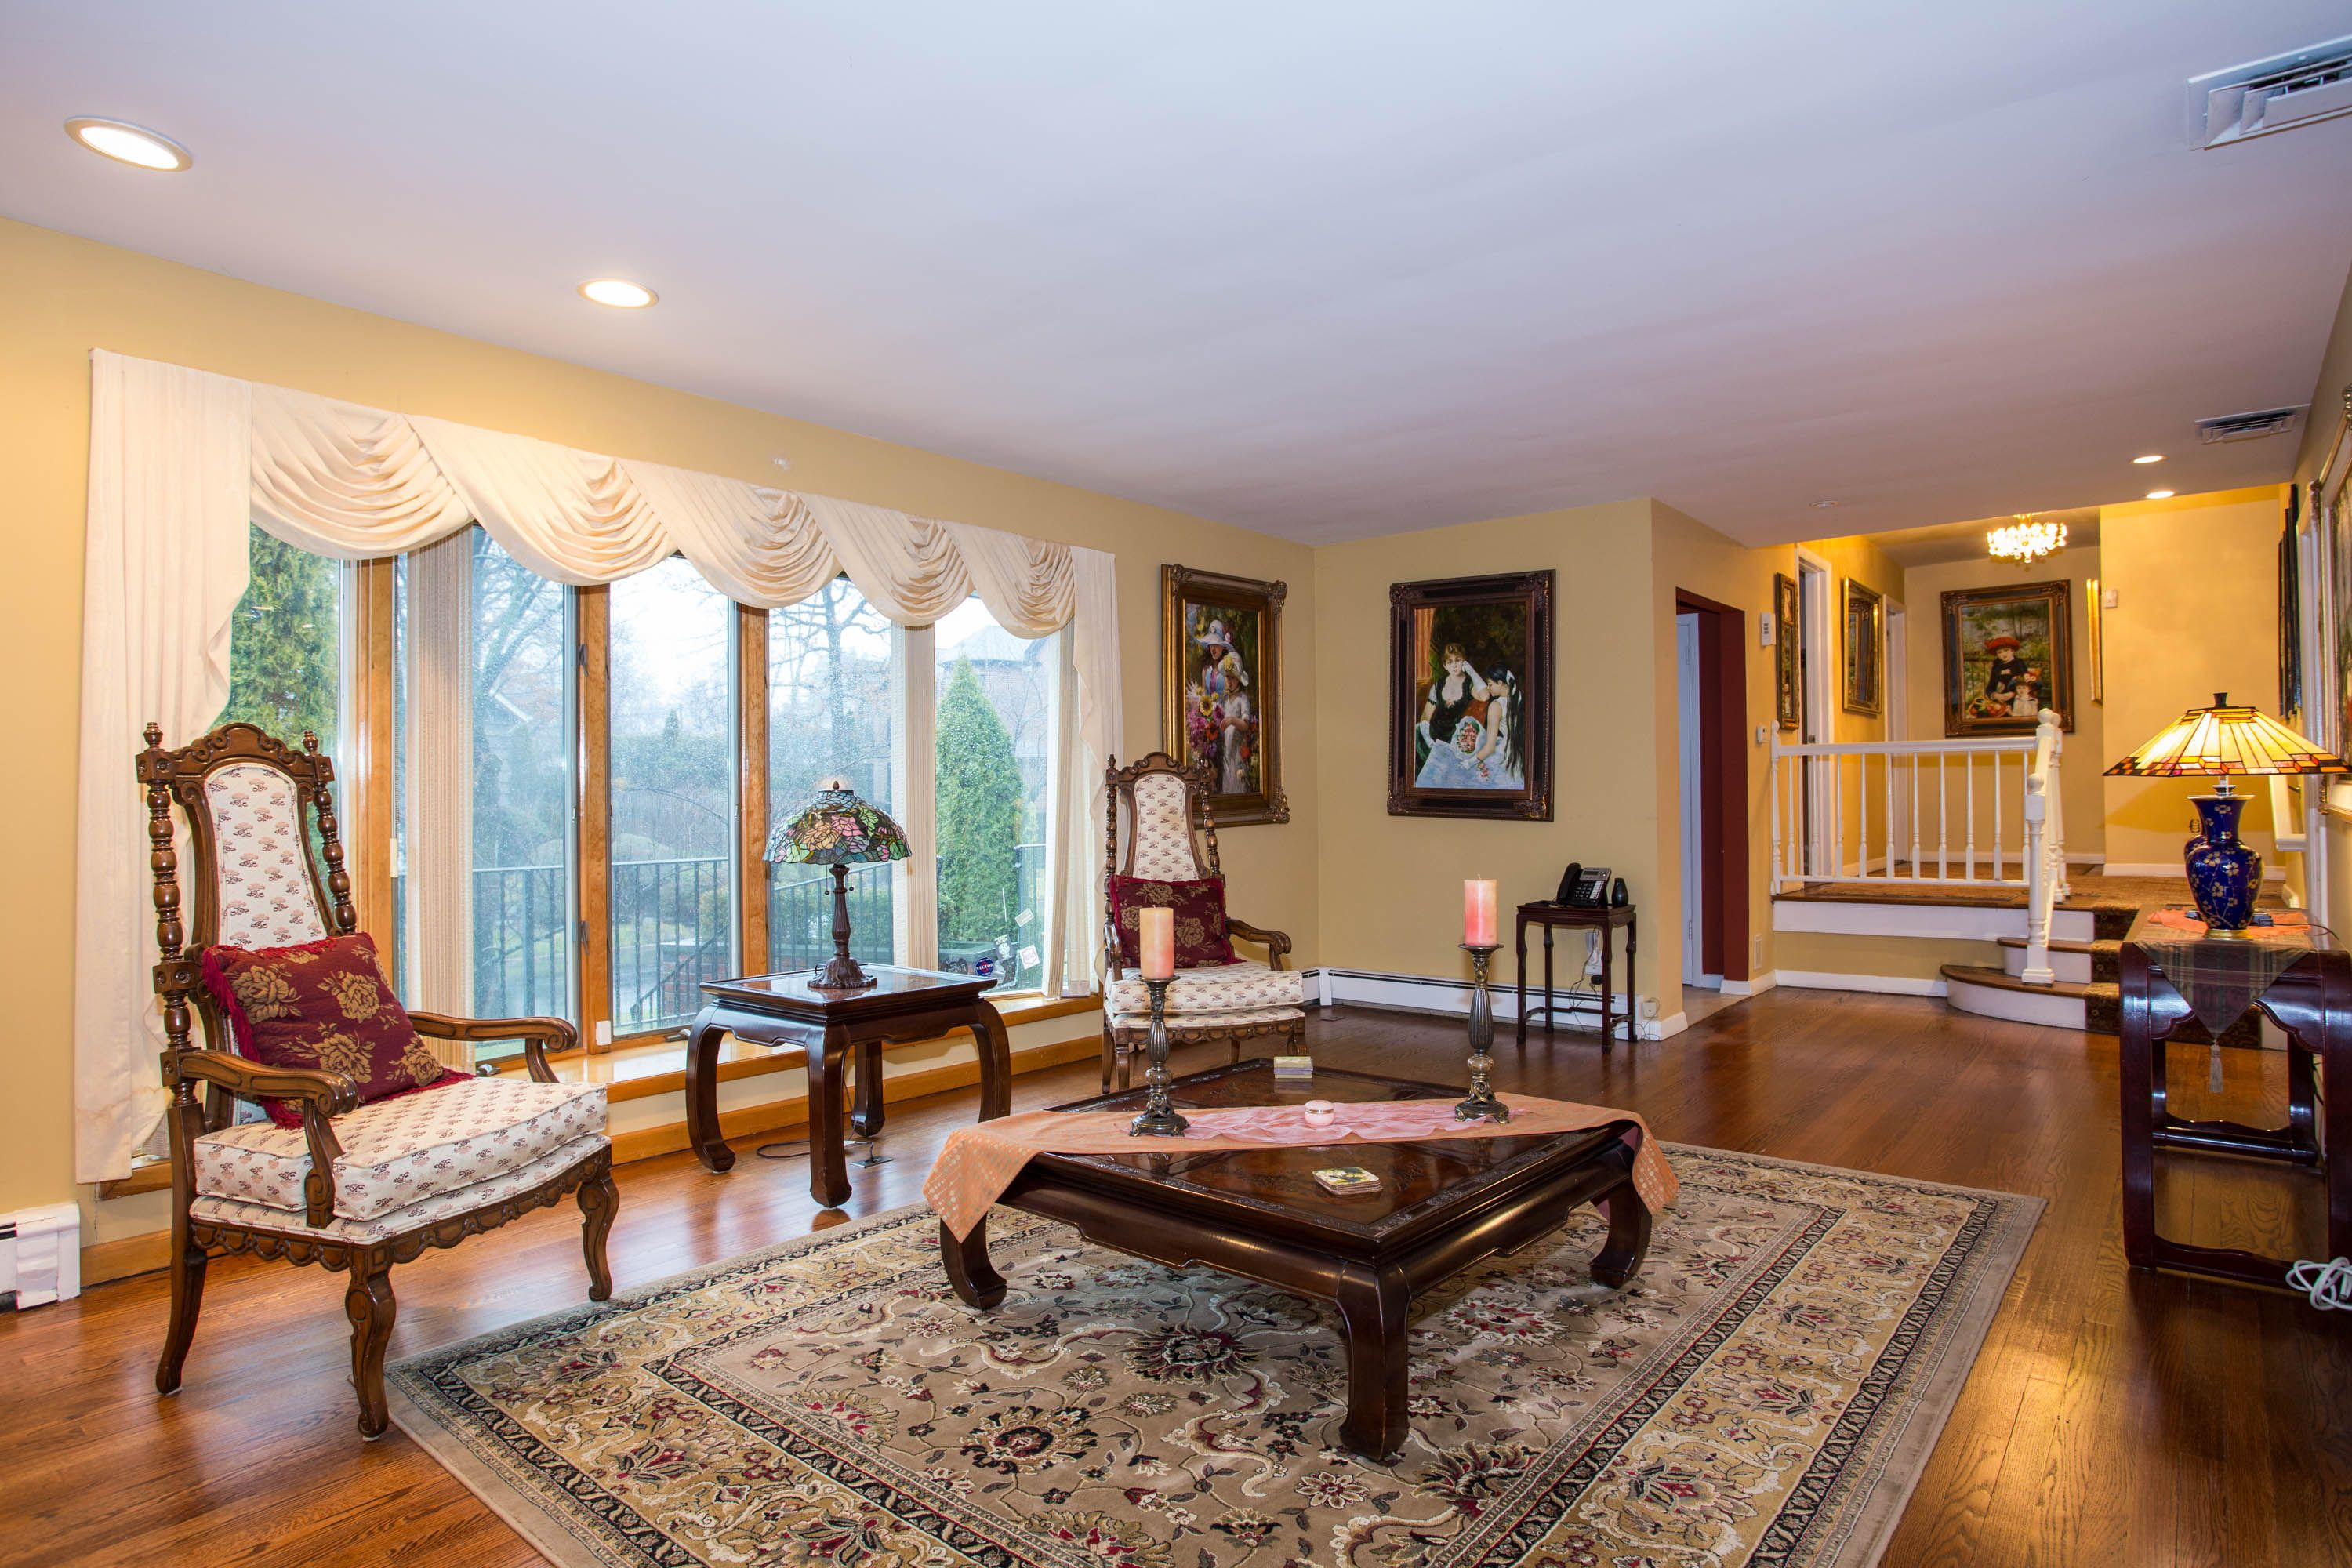 Single Family Home for Sale at A MUST SEE! 25 Samford Drive Englewood Cliffs, New Jersey, 07632 United States